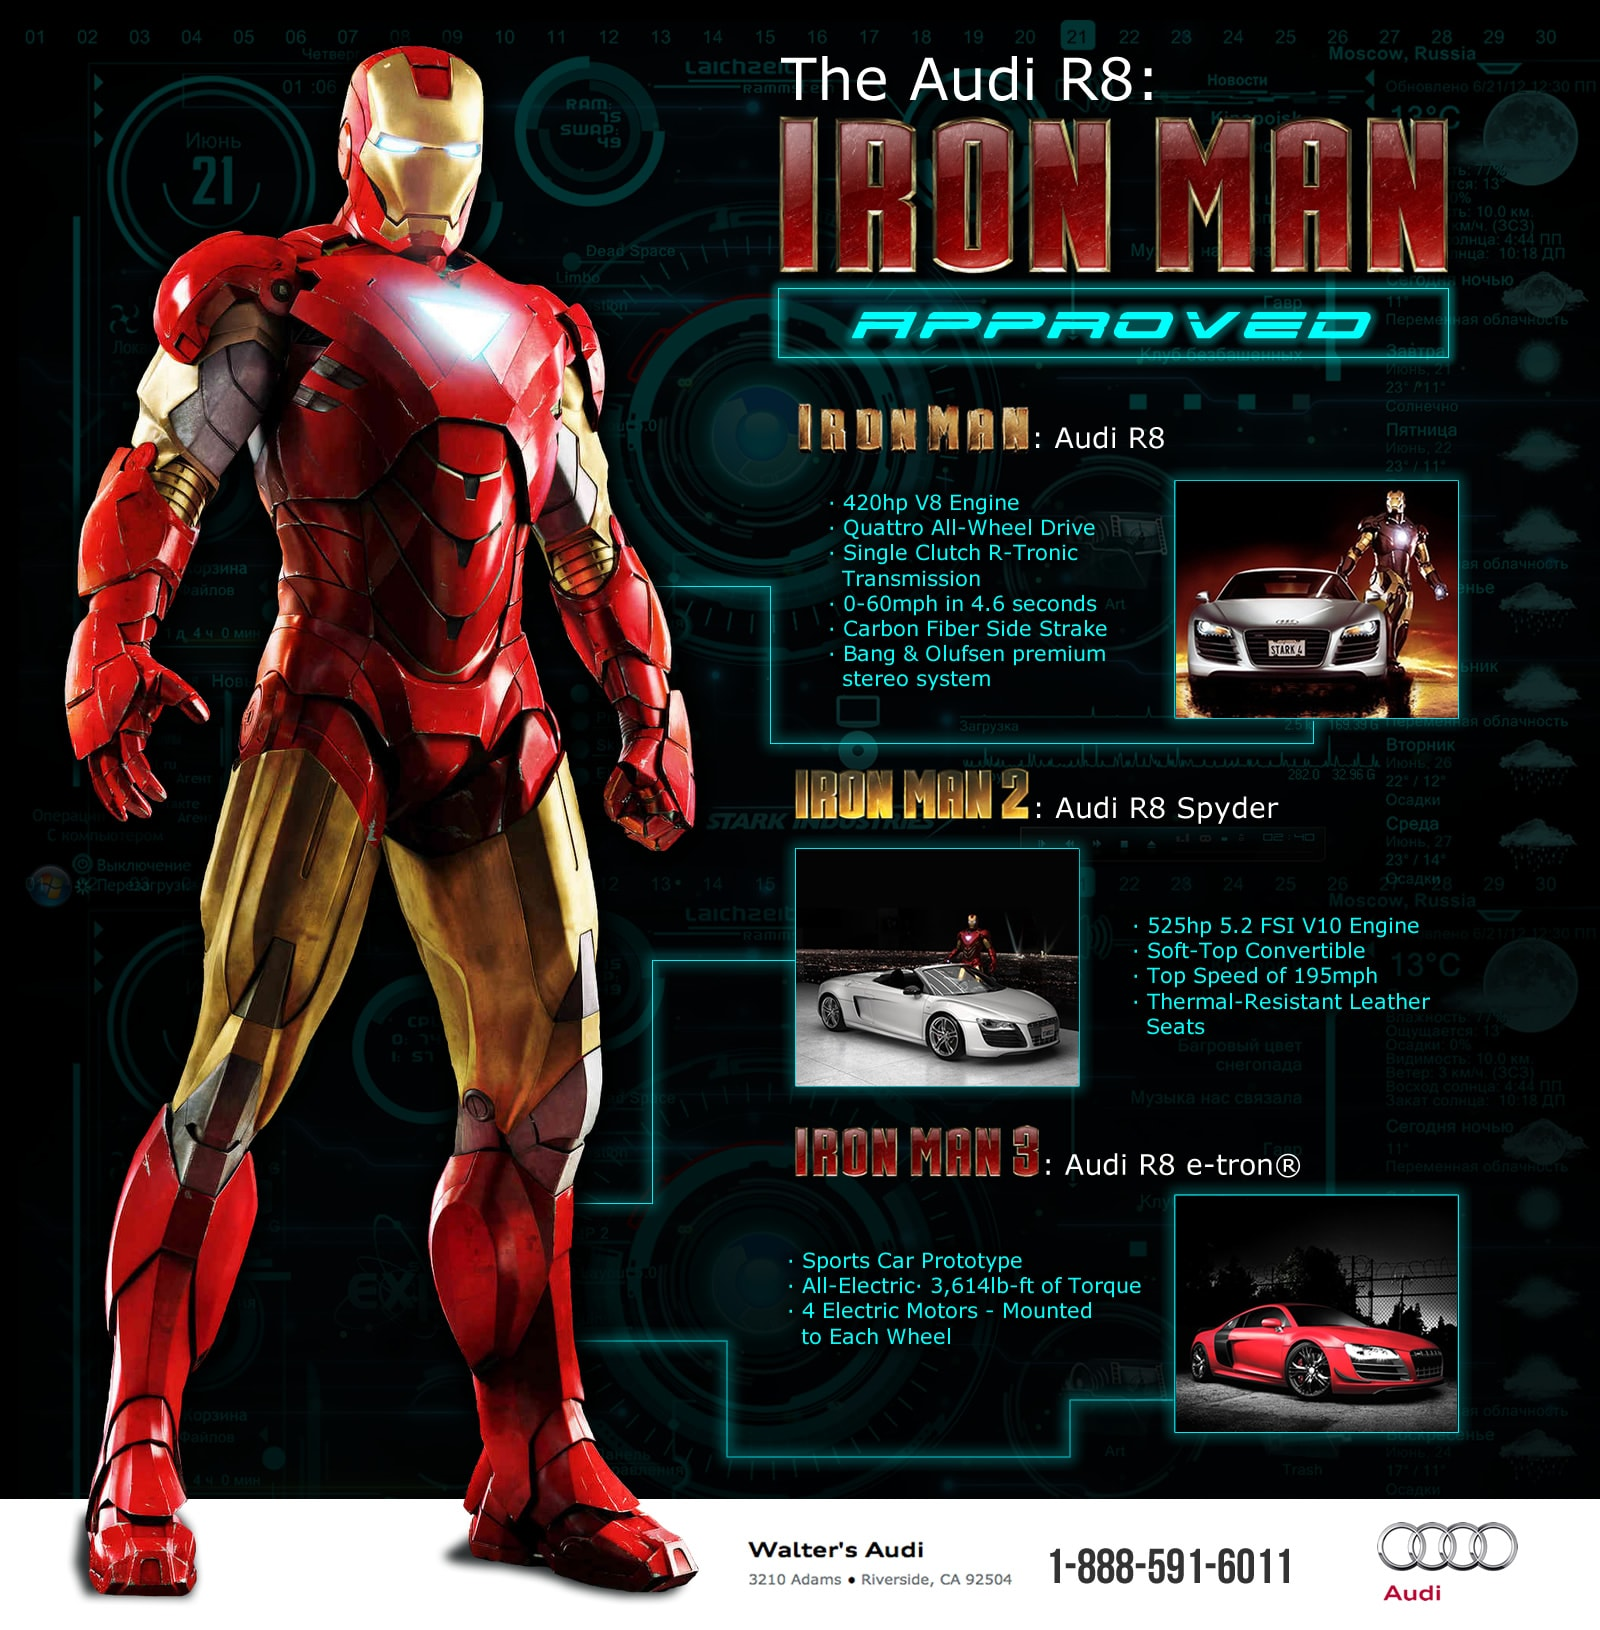 The Audi R8: Iron Man Approved